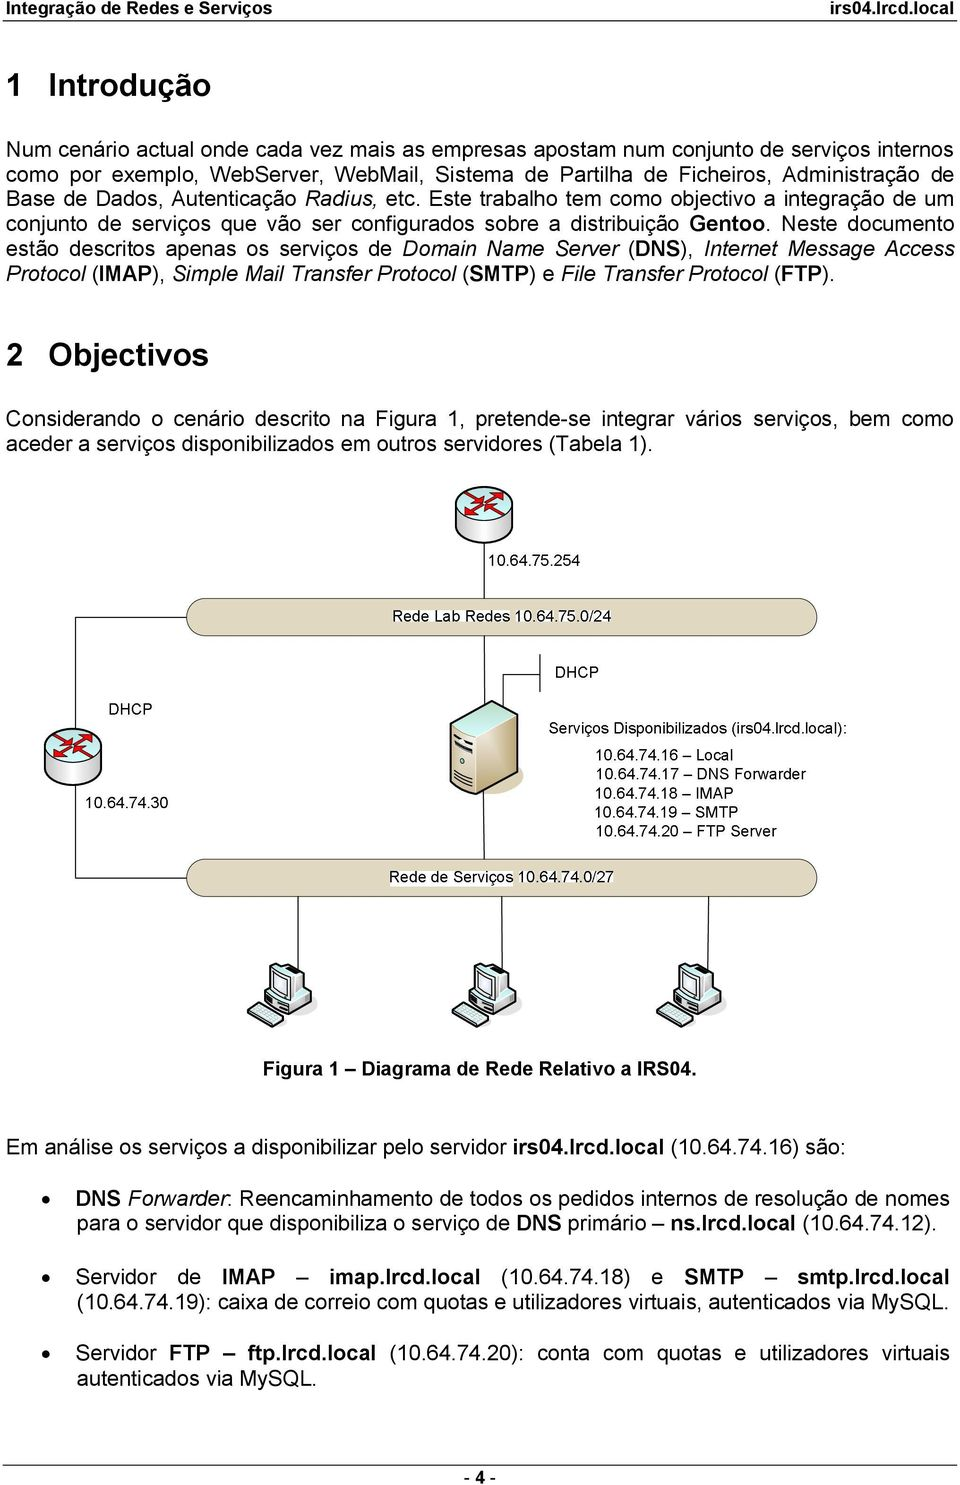 Neste documento estão descritos apenas os serviços de Domain Name Server (DNS), Internet Message Access Protocol (IMAP), Simple Mail Transfer Protocol (SMTP) e File Transfer Protocol (FTP).